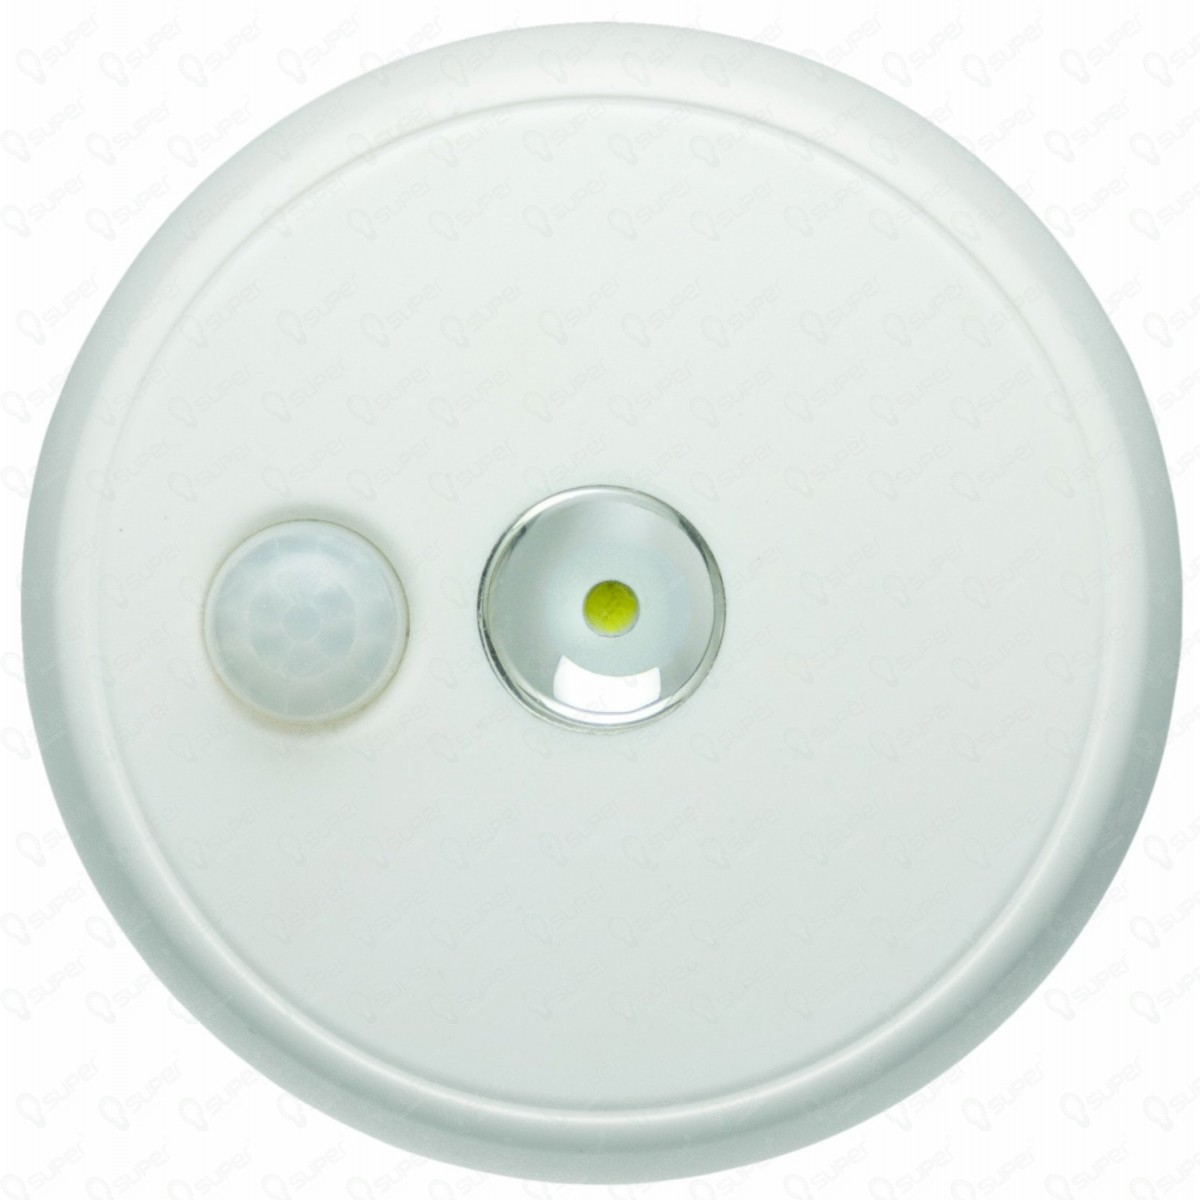 Outdoor ceiling light motion sensor 10 advices by installing